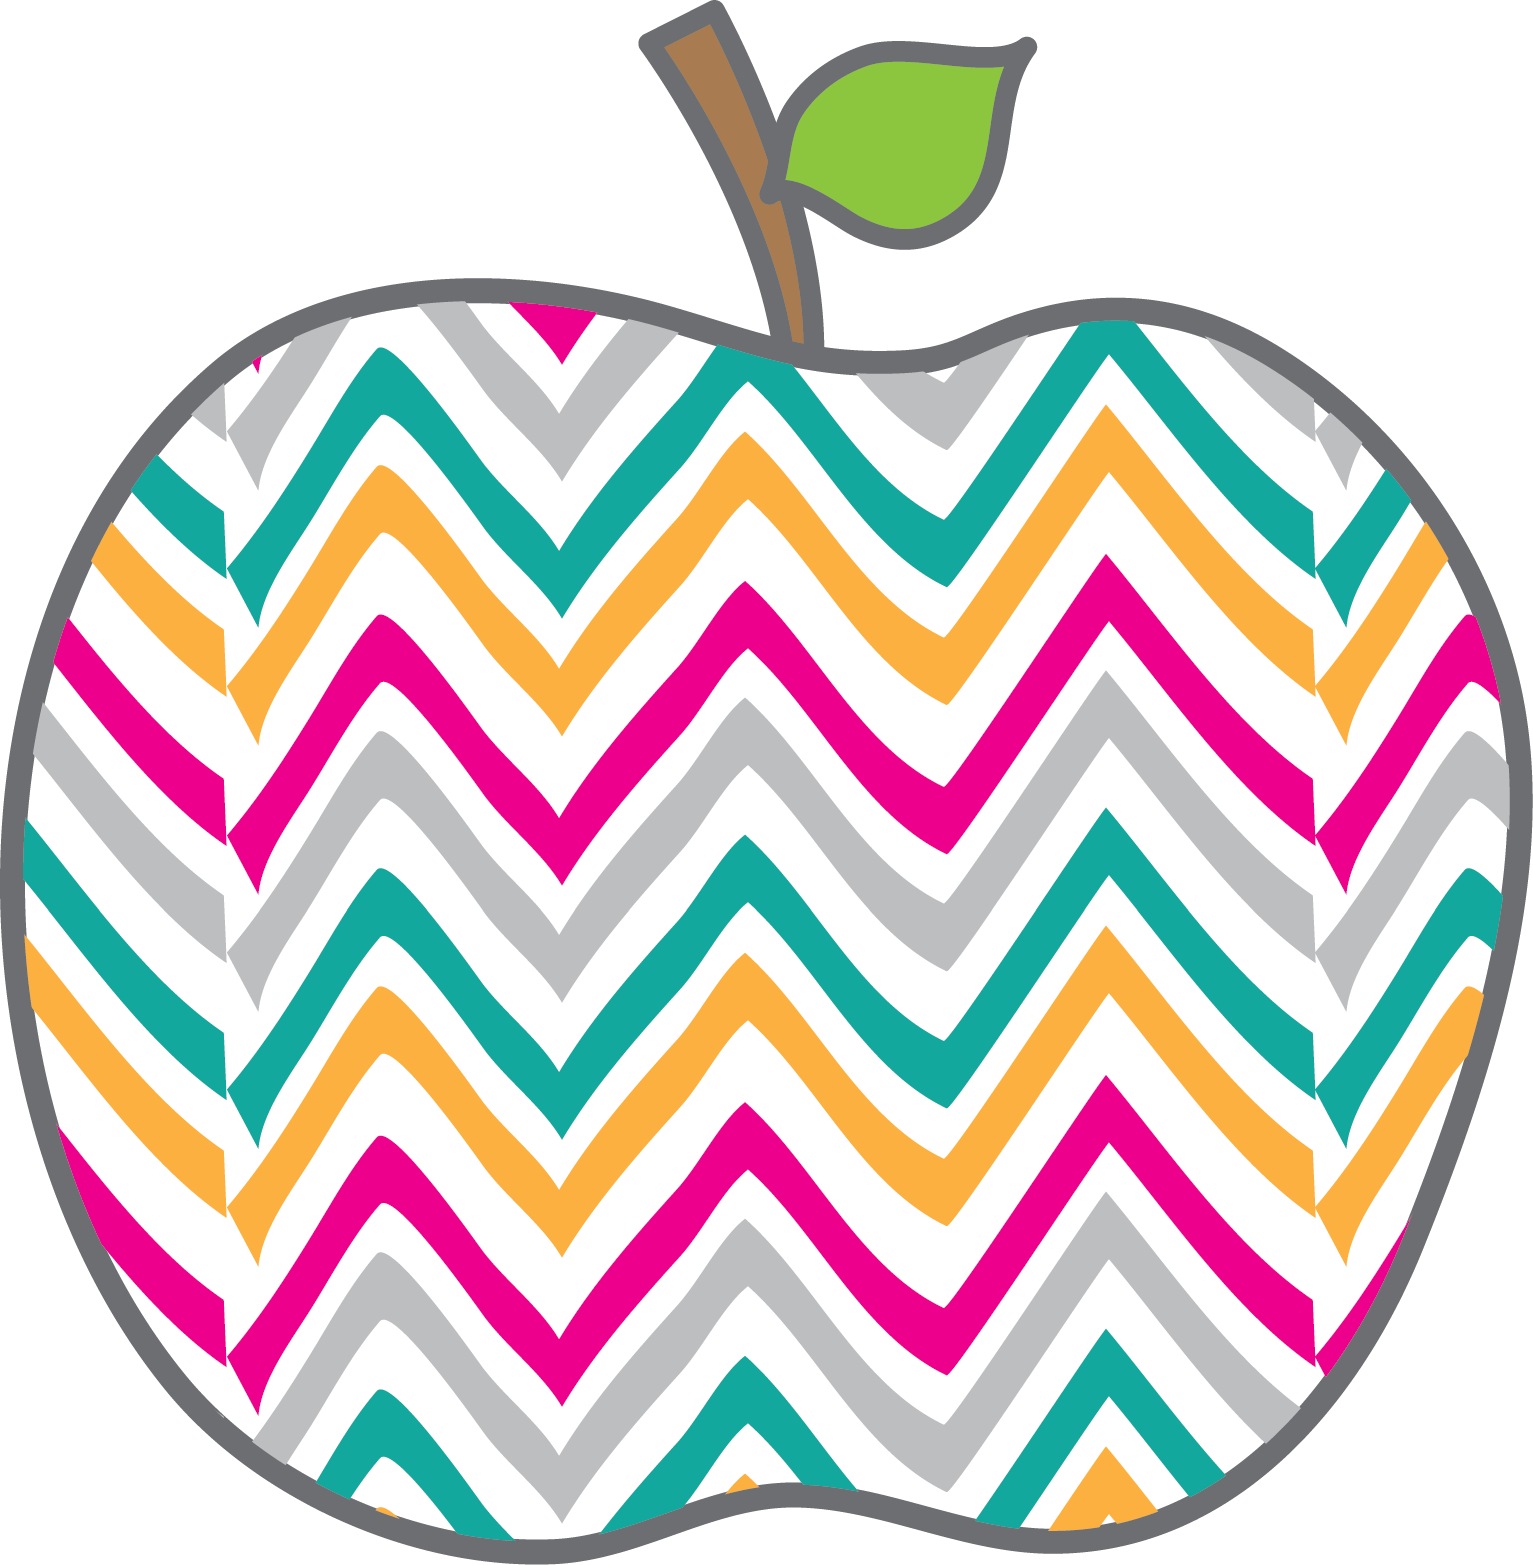 chevron apple image